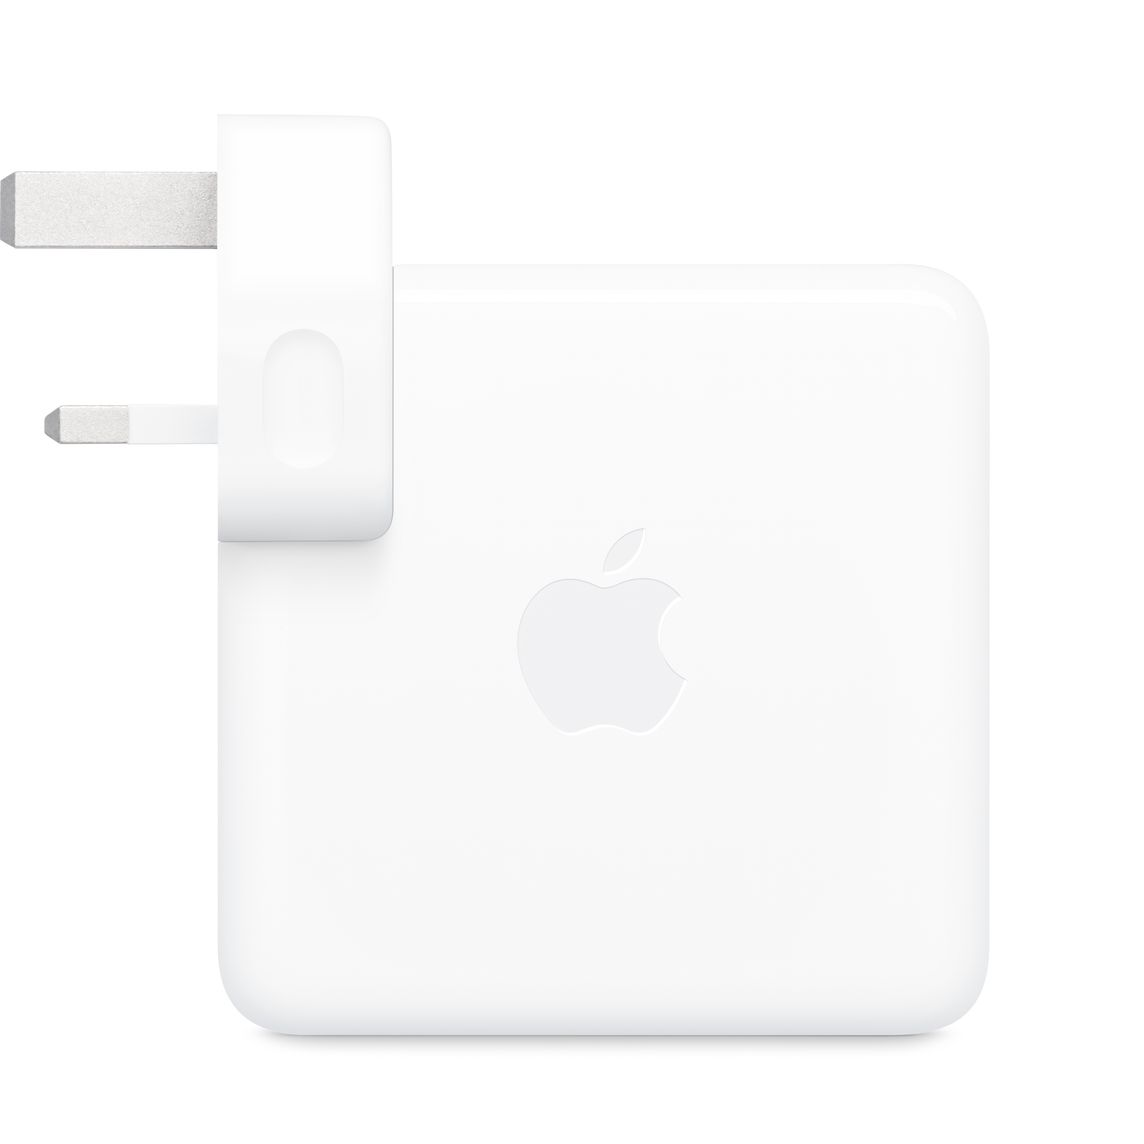 96W USB-C Power Adapter - Apple (UK)